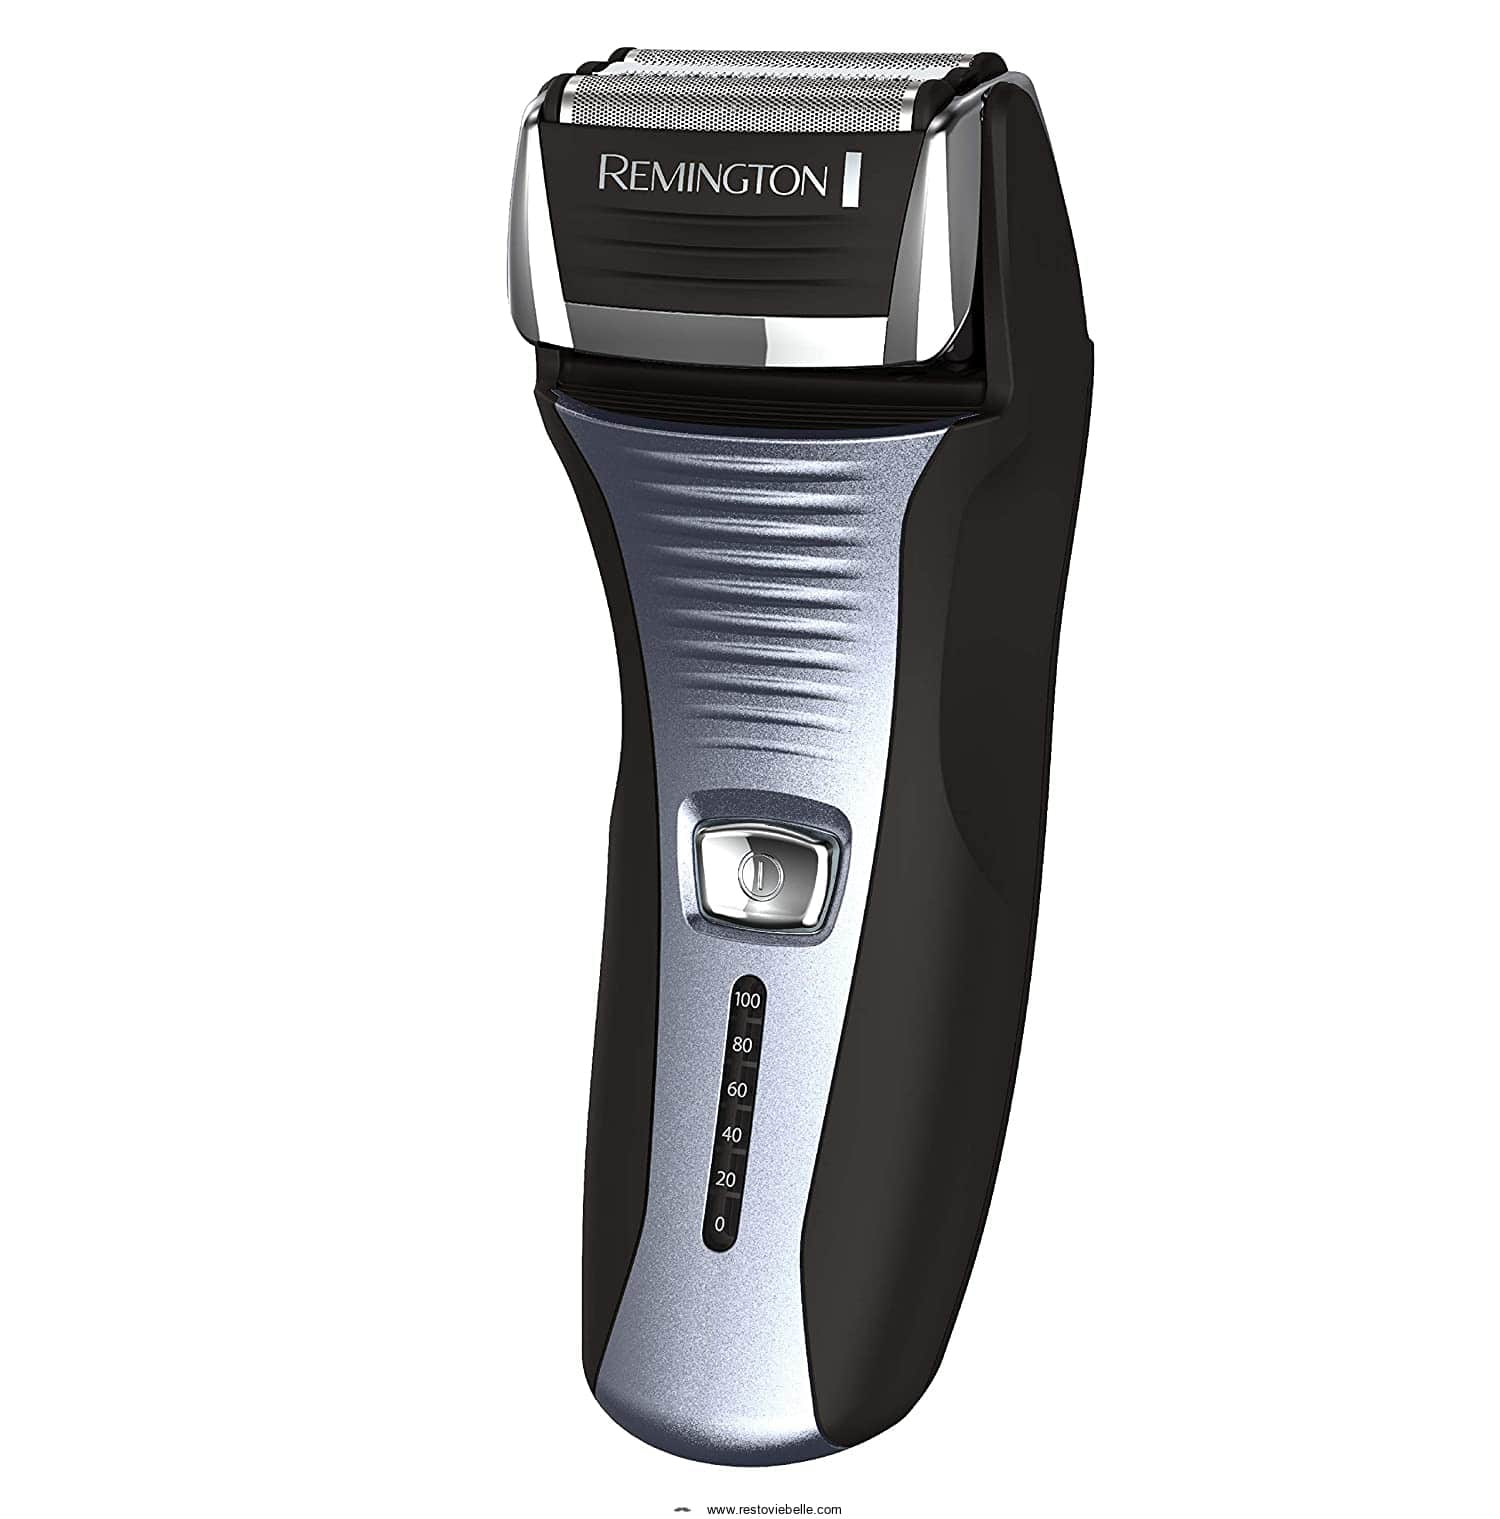 Remington F5-5800 Foil Shaver, Men's